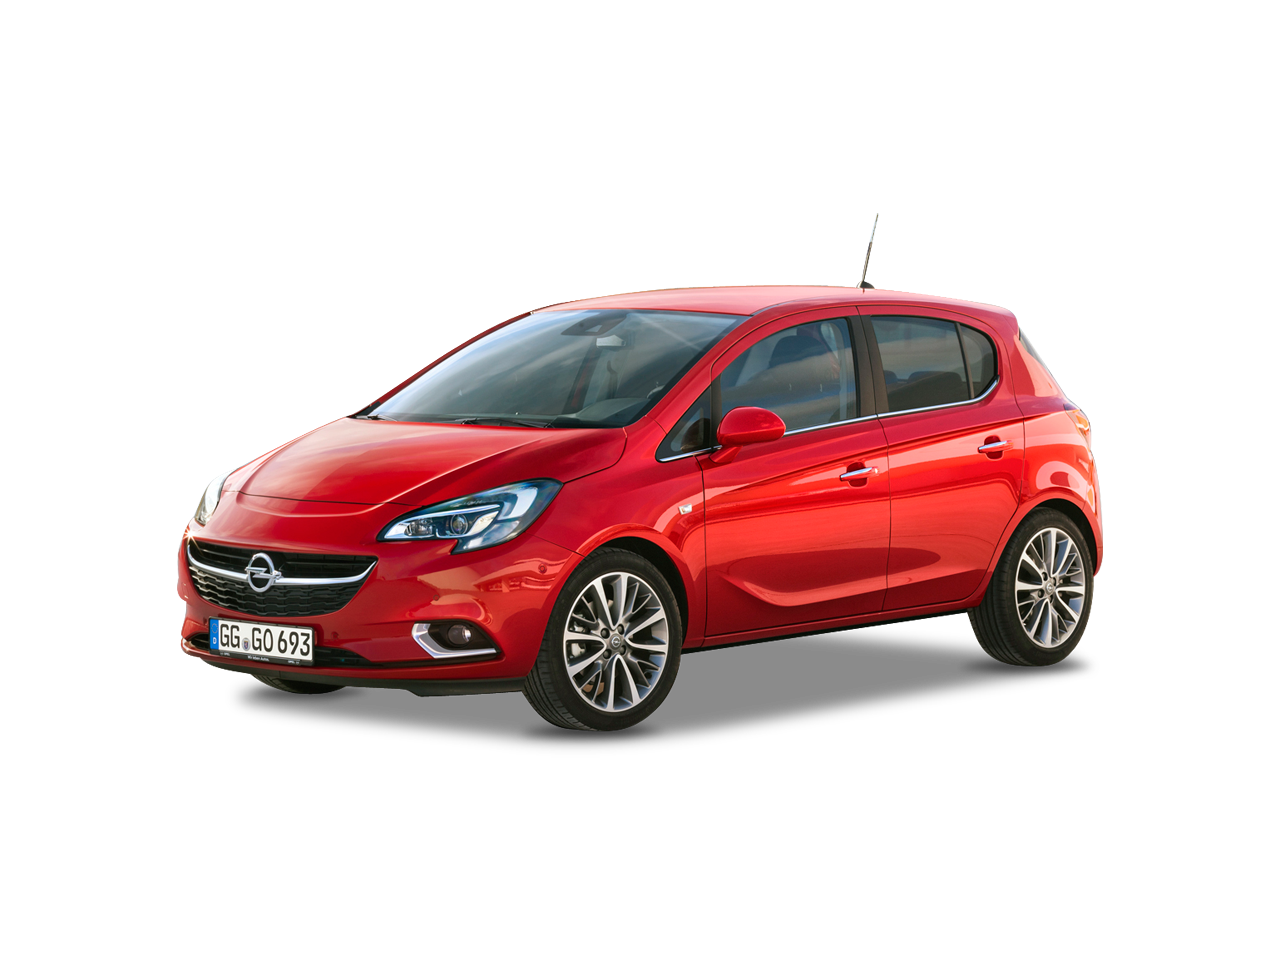 City car clipart picture free download Opel Corsa PNG Clipart - Download free images in PNG picture free download